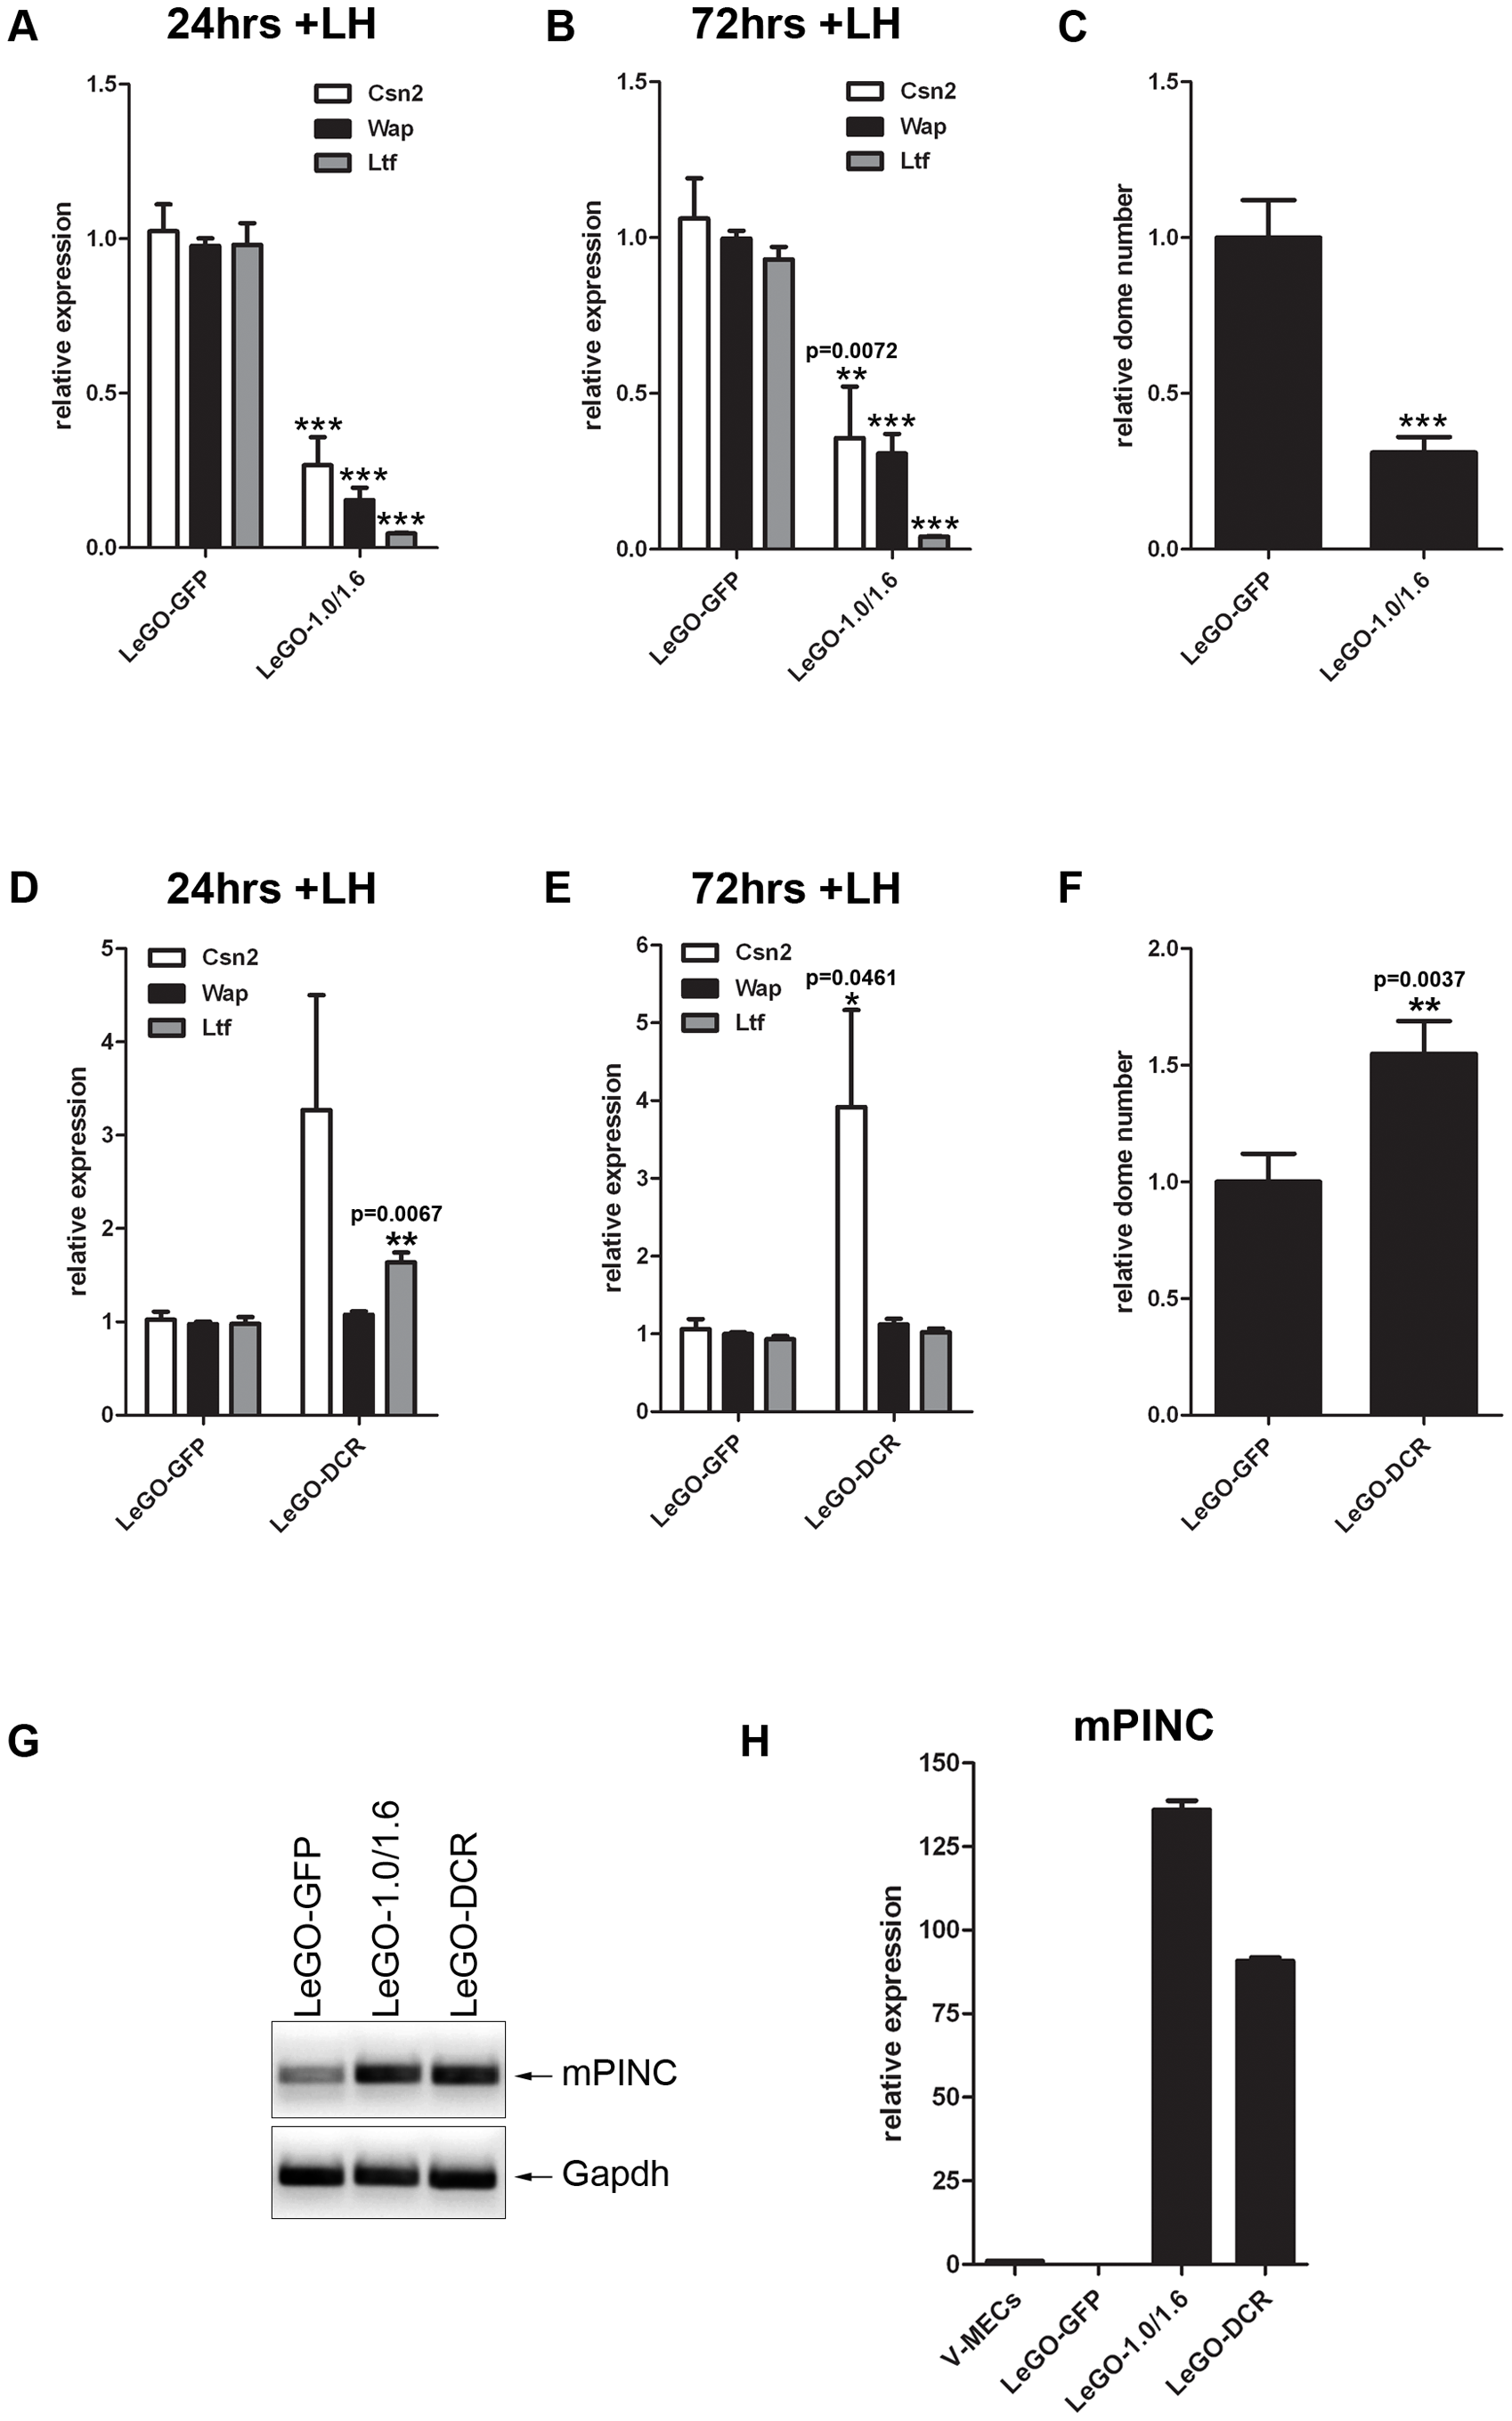 Overexpression of <i>mPINC</i> inhibits differentiation of HC11 cells.